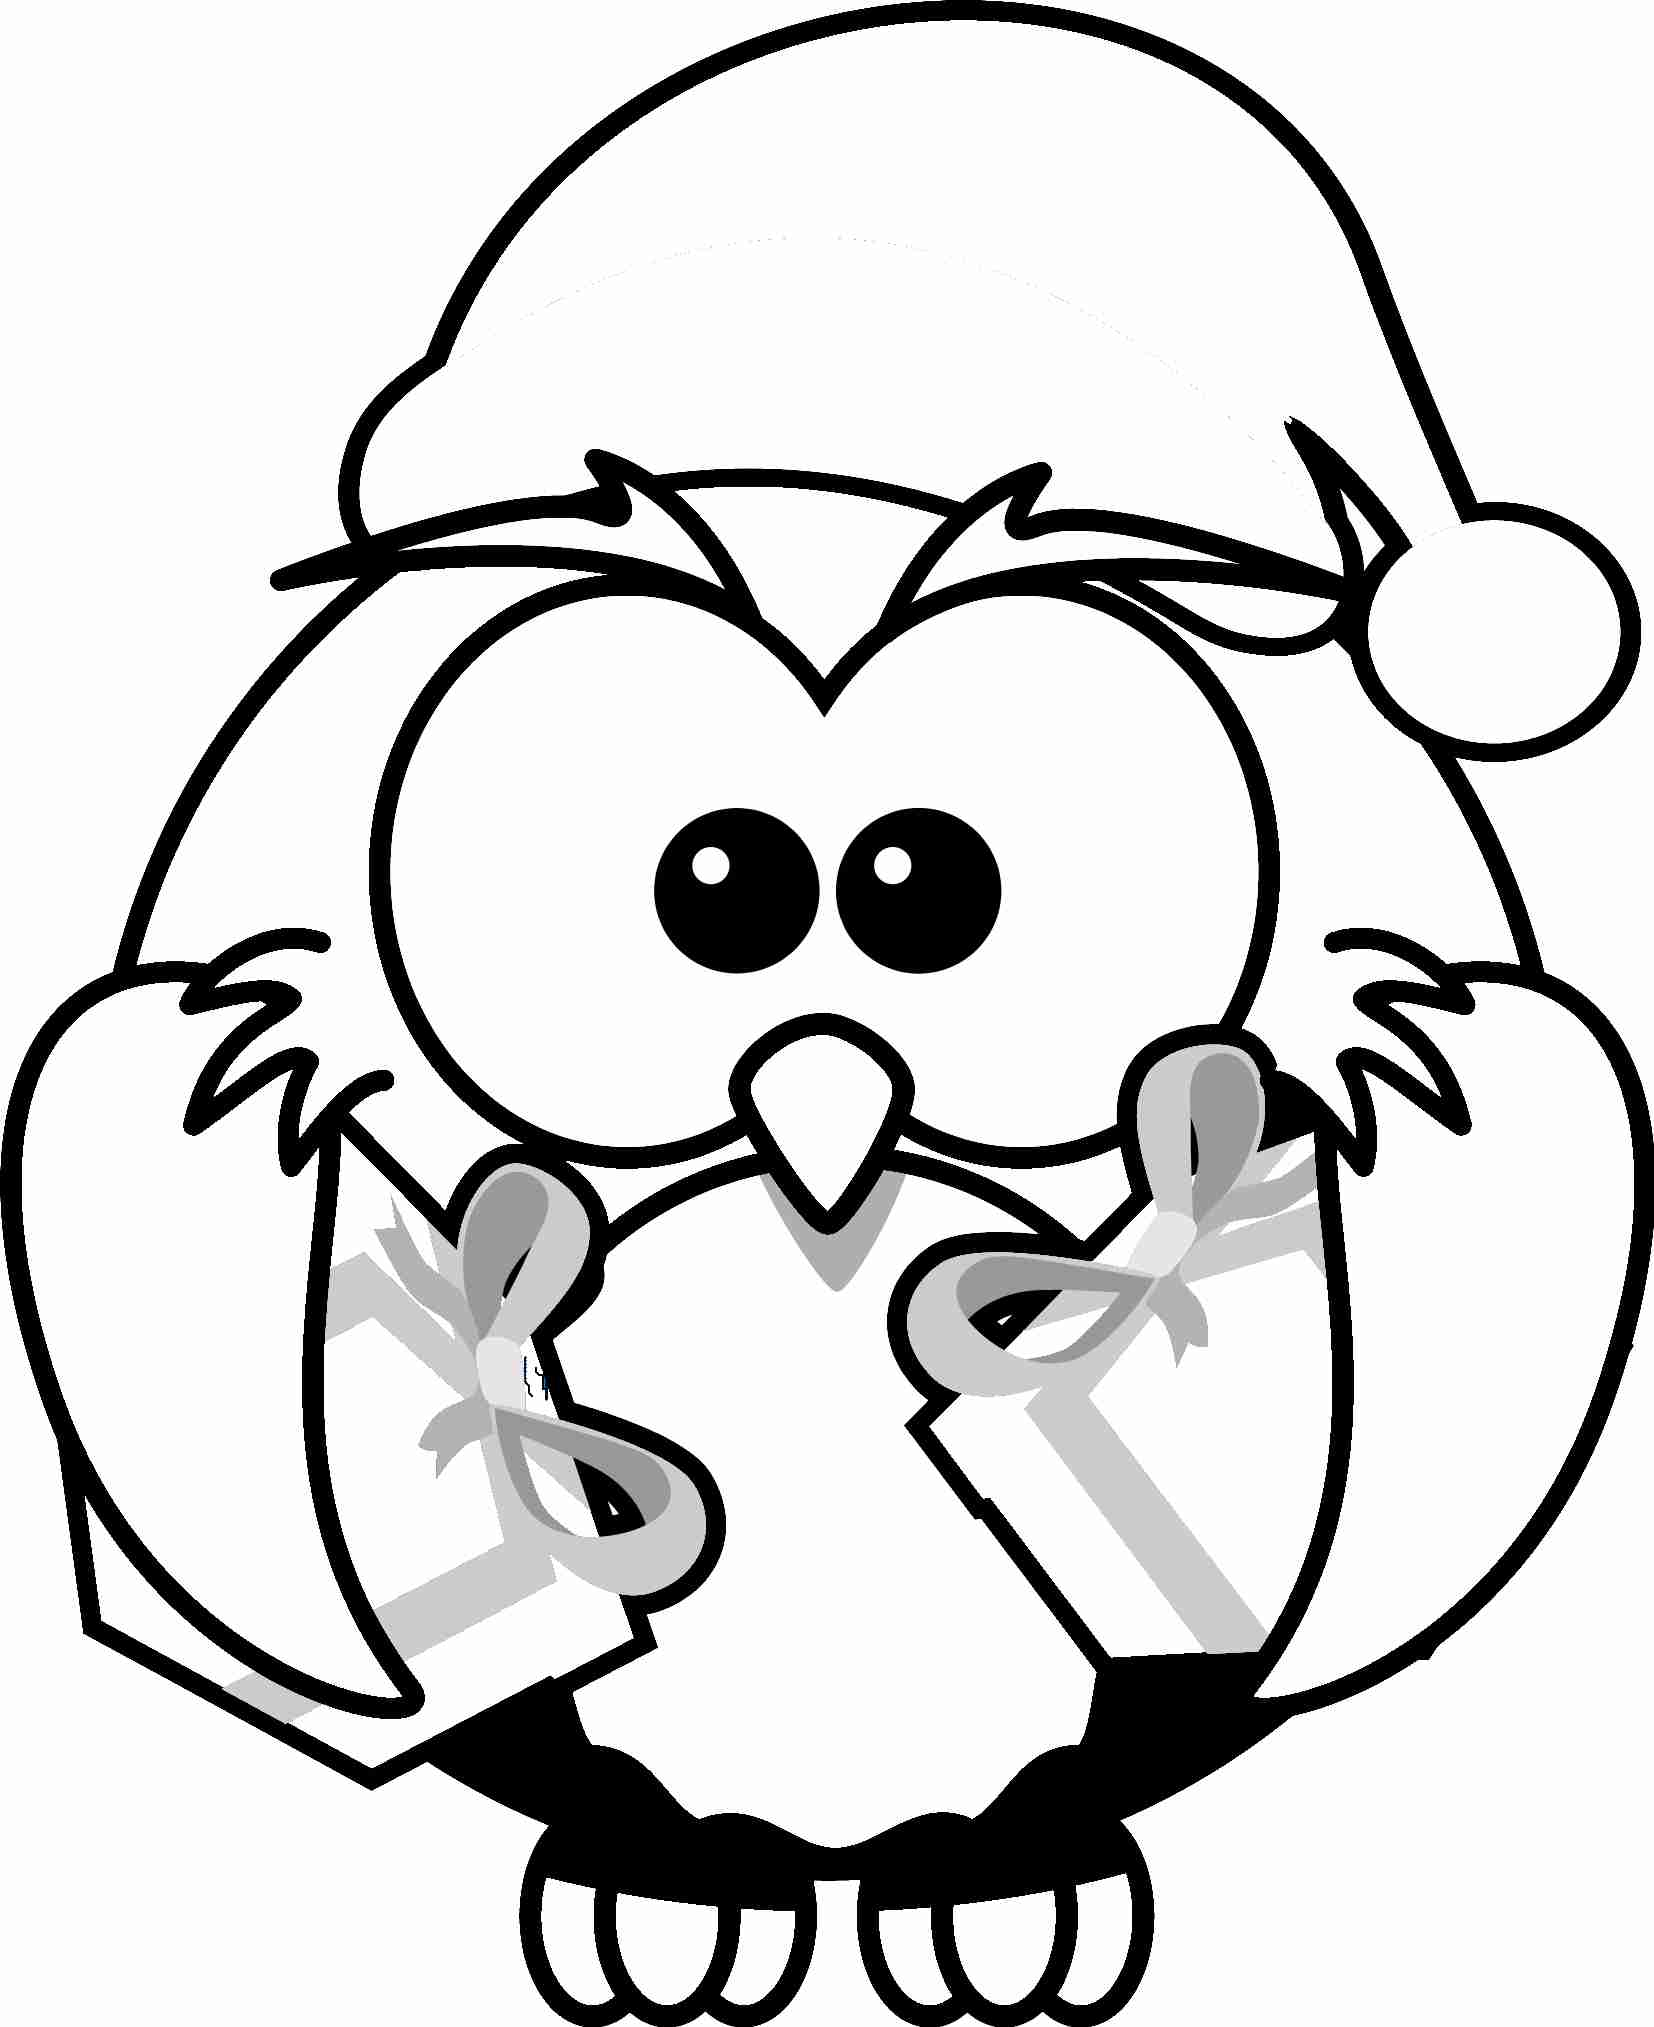 Christmas Coloring Masks With Free Father Pictures To Colour Download Clip Art